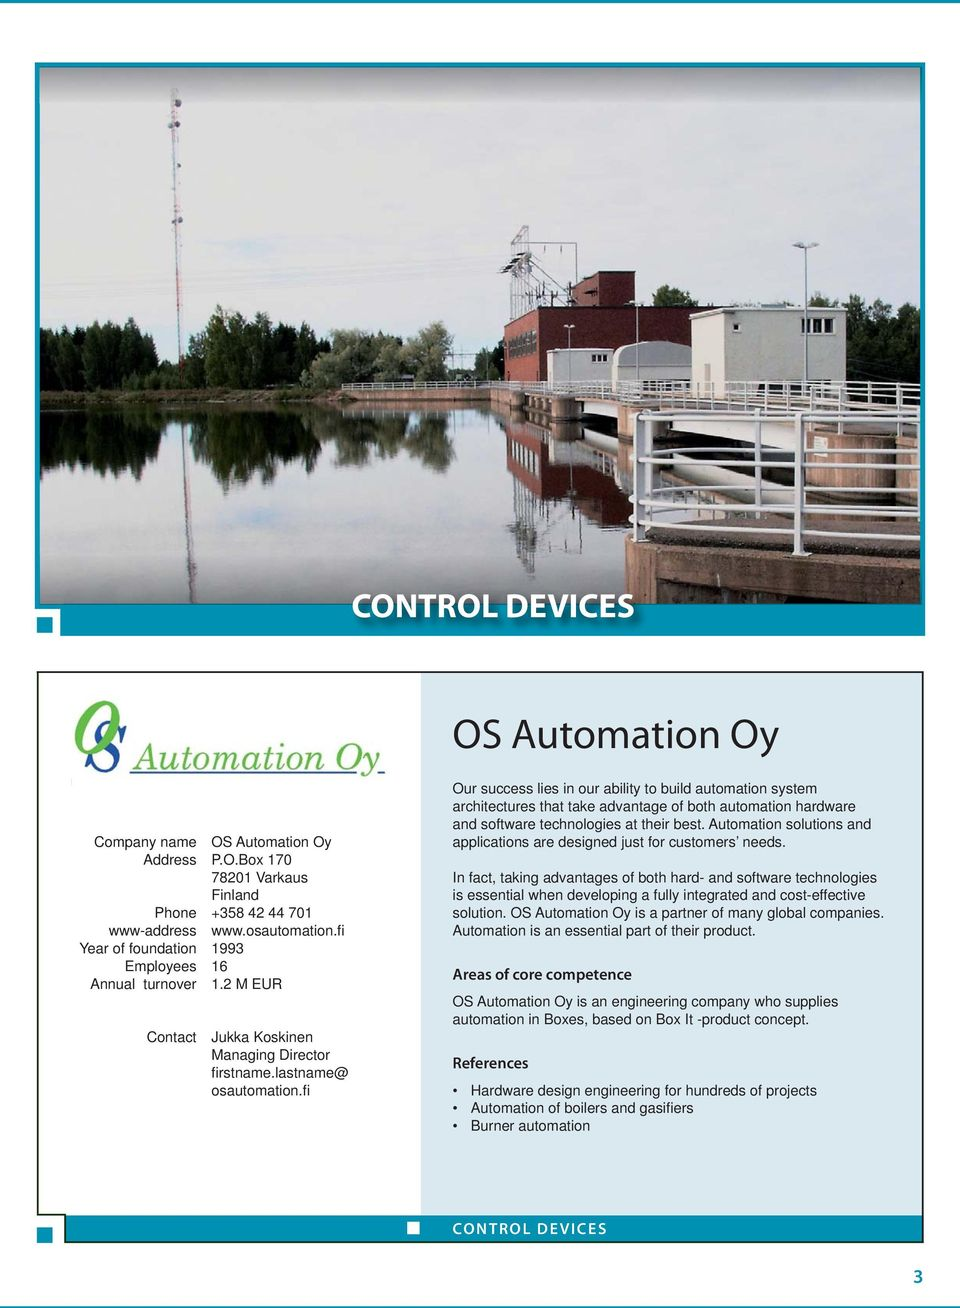 Automation solutions and applications are designed just for customers needs.